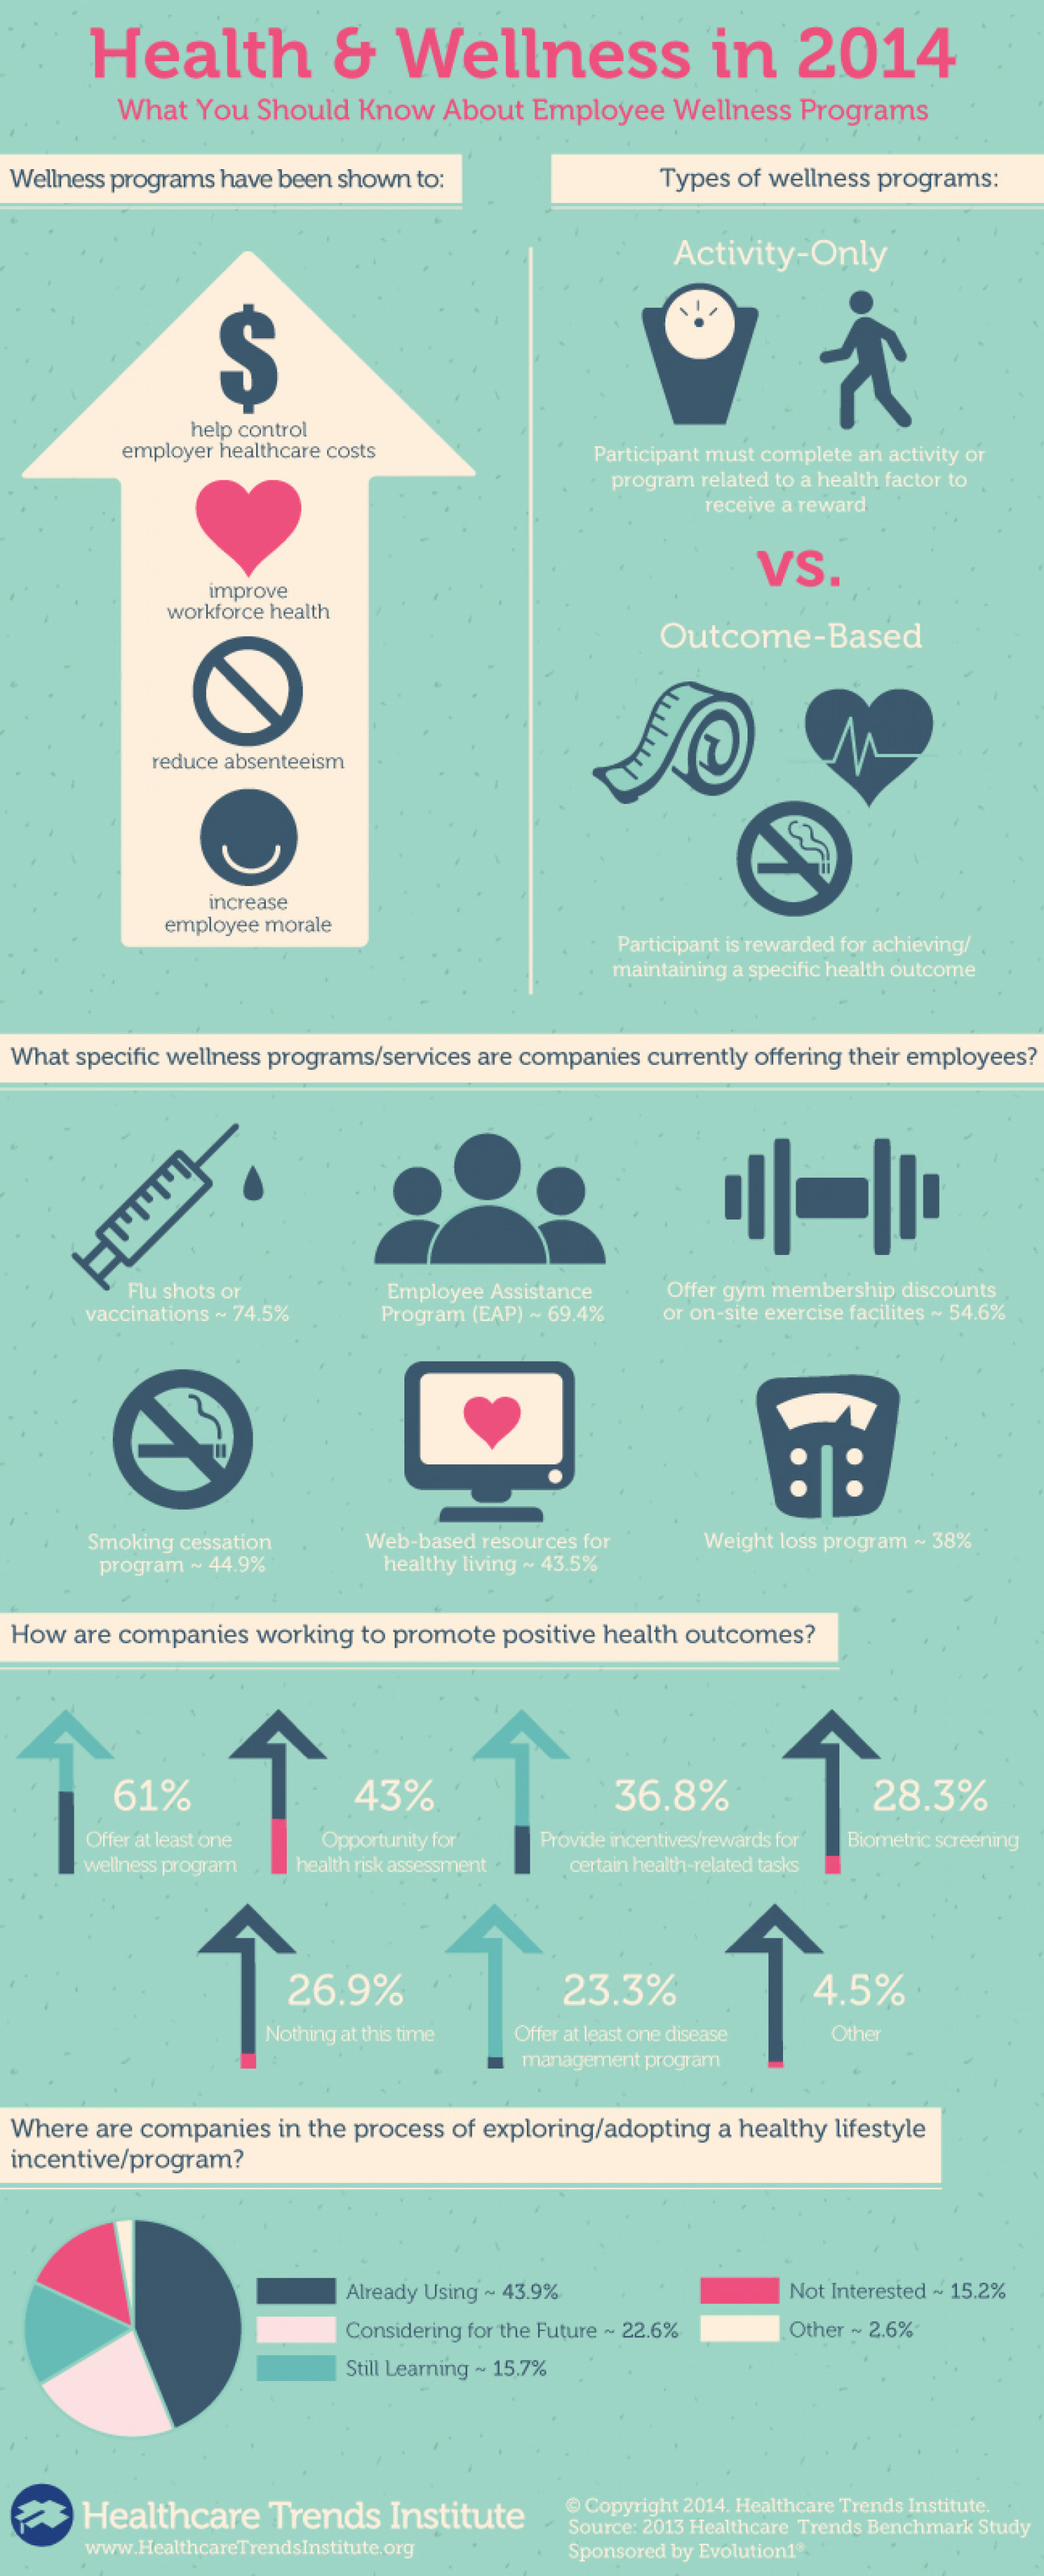 What You Should Know About Employee Wellness Programs [infographic]